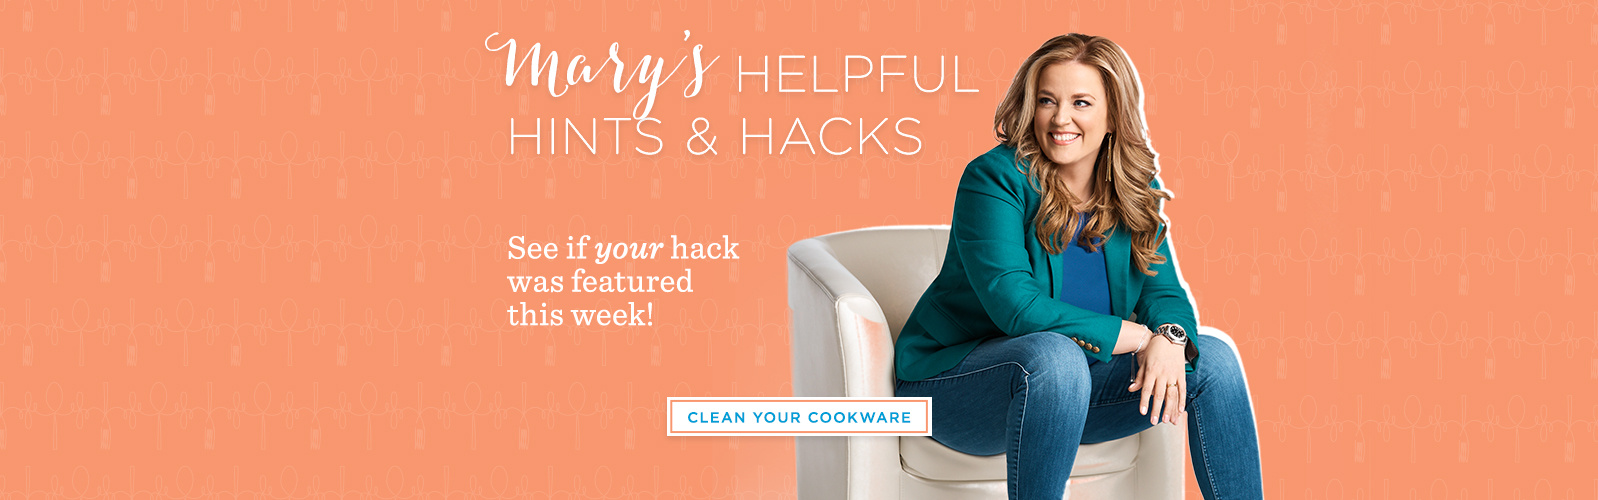 Mary's Helpful Hints & Hacks. See if your hack was featured this week!